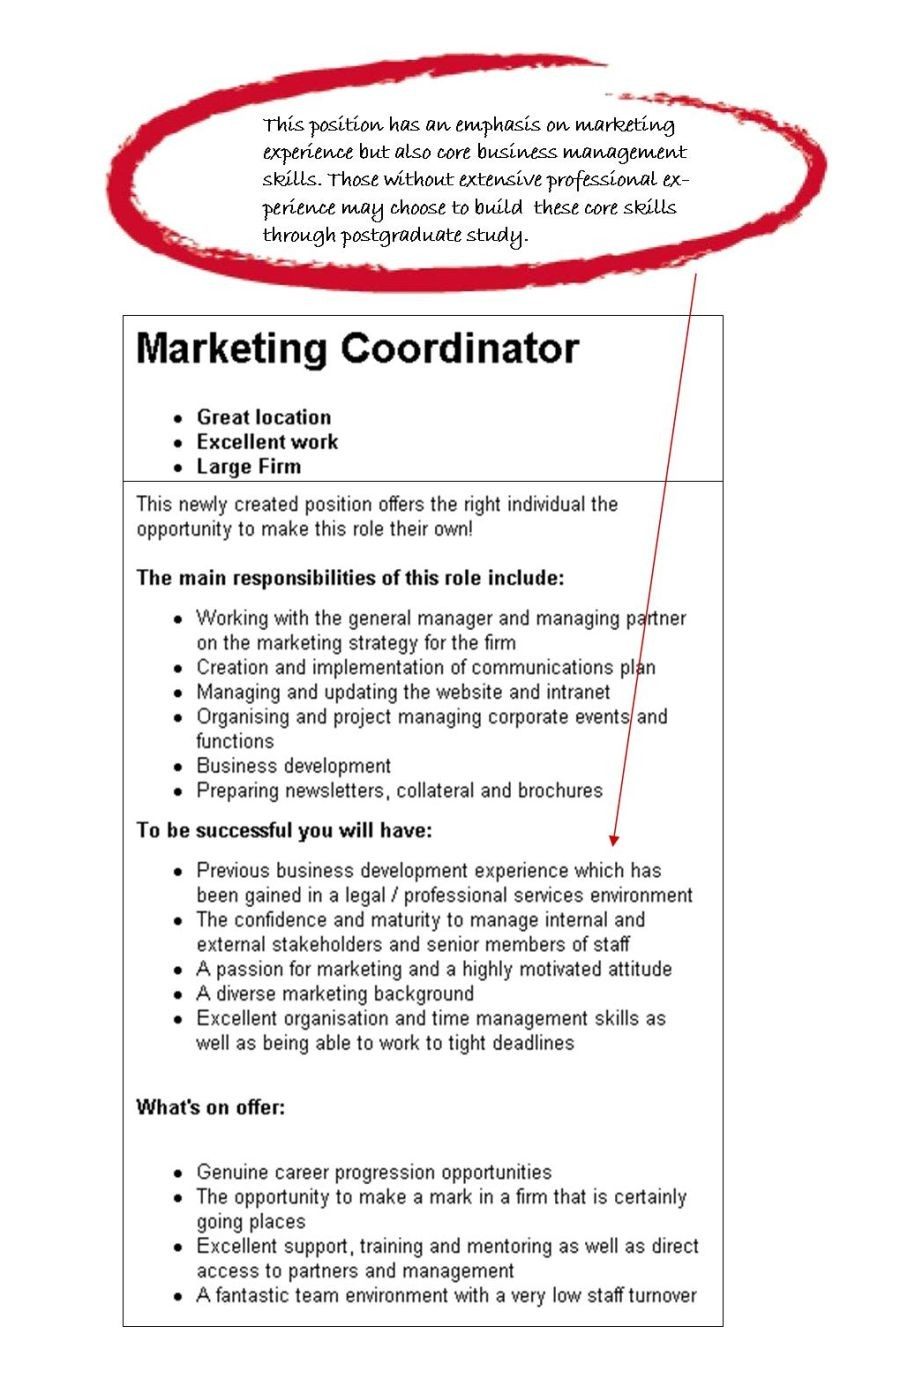 resume objective examples cv marketing job references template word interview format for Resume Marketing Job Resume Objective